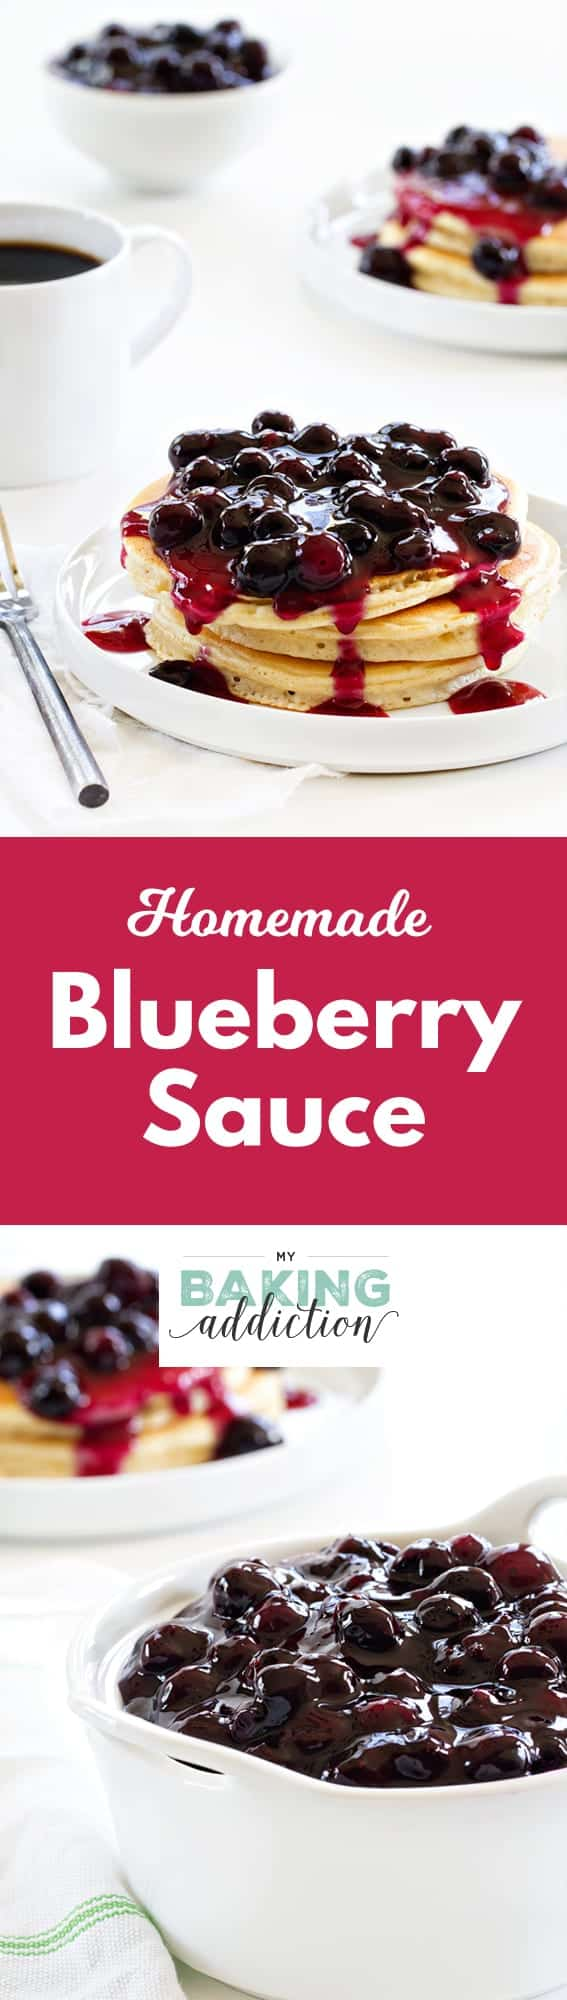 Homemade Blueberry Sauce Pin